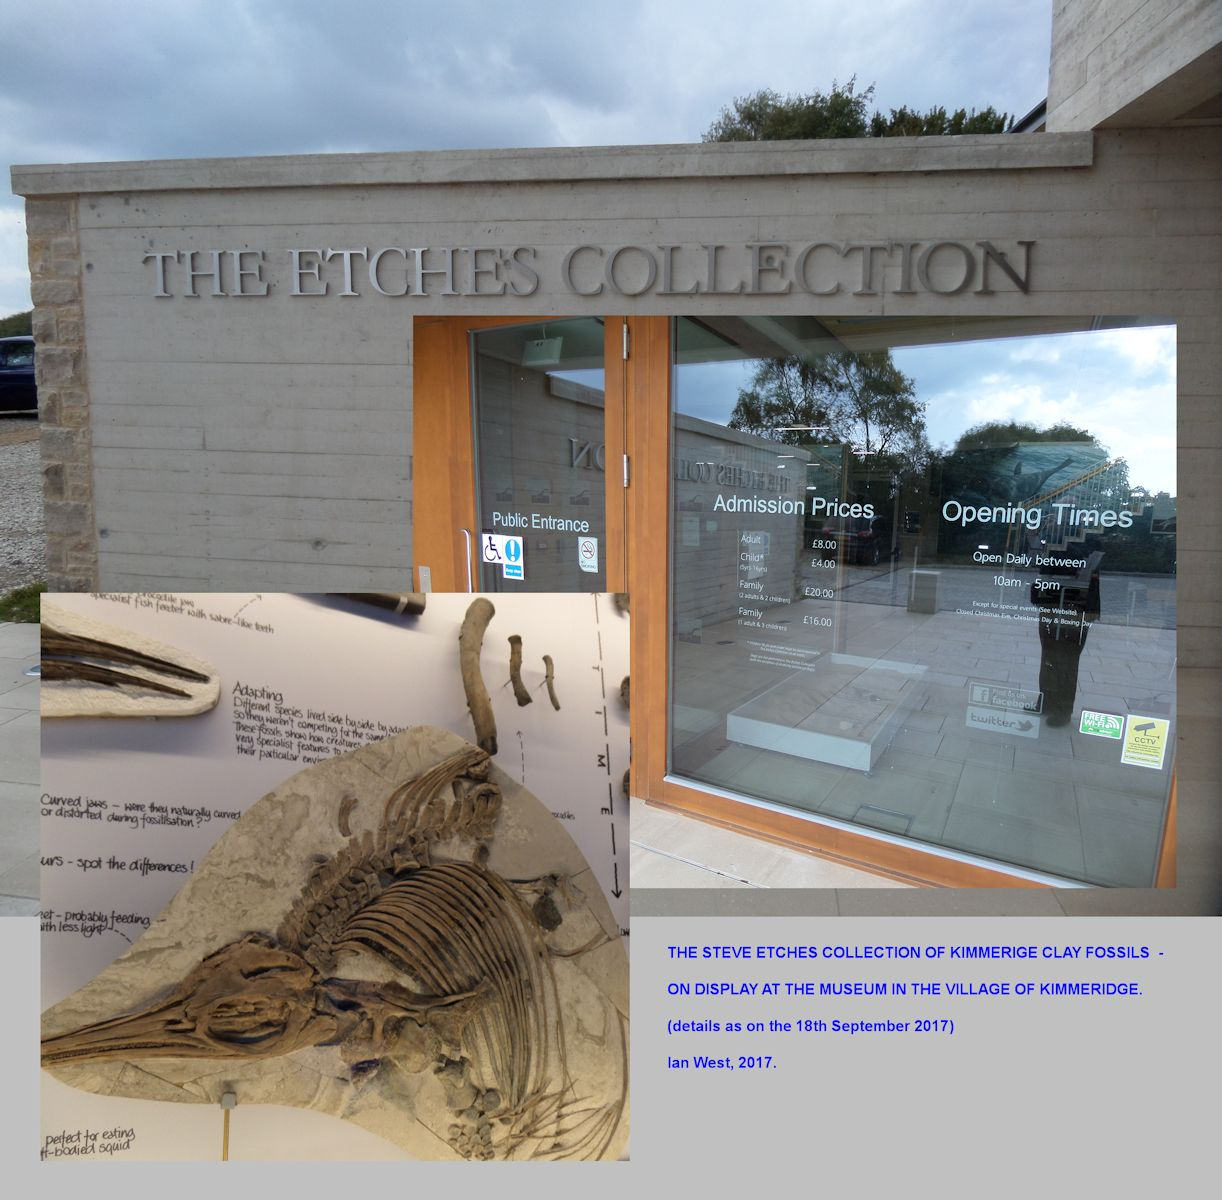 The Steve Etches Museum, Kimmeridge, Dorset, with many remains of Ichthyosaurs and other fossil, collected by Steve Etches from the Kimmeridge Clay Formation